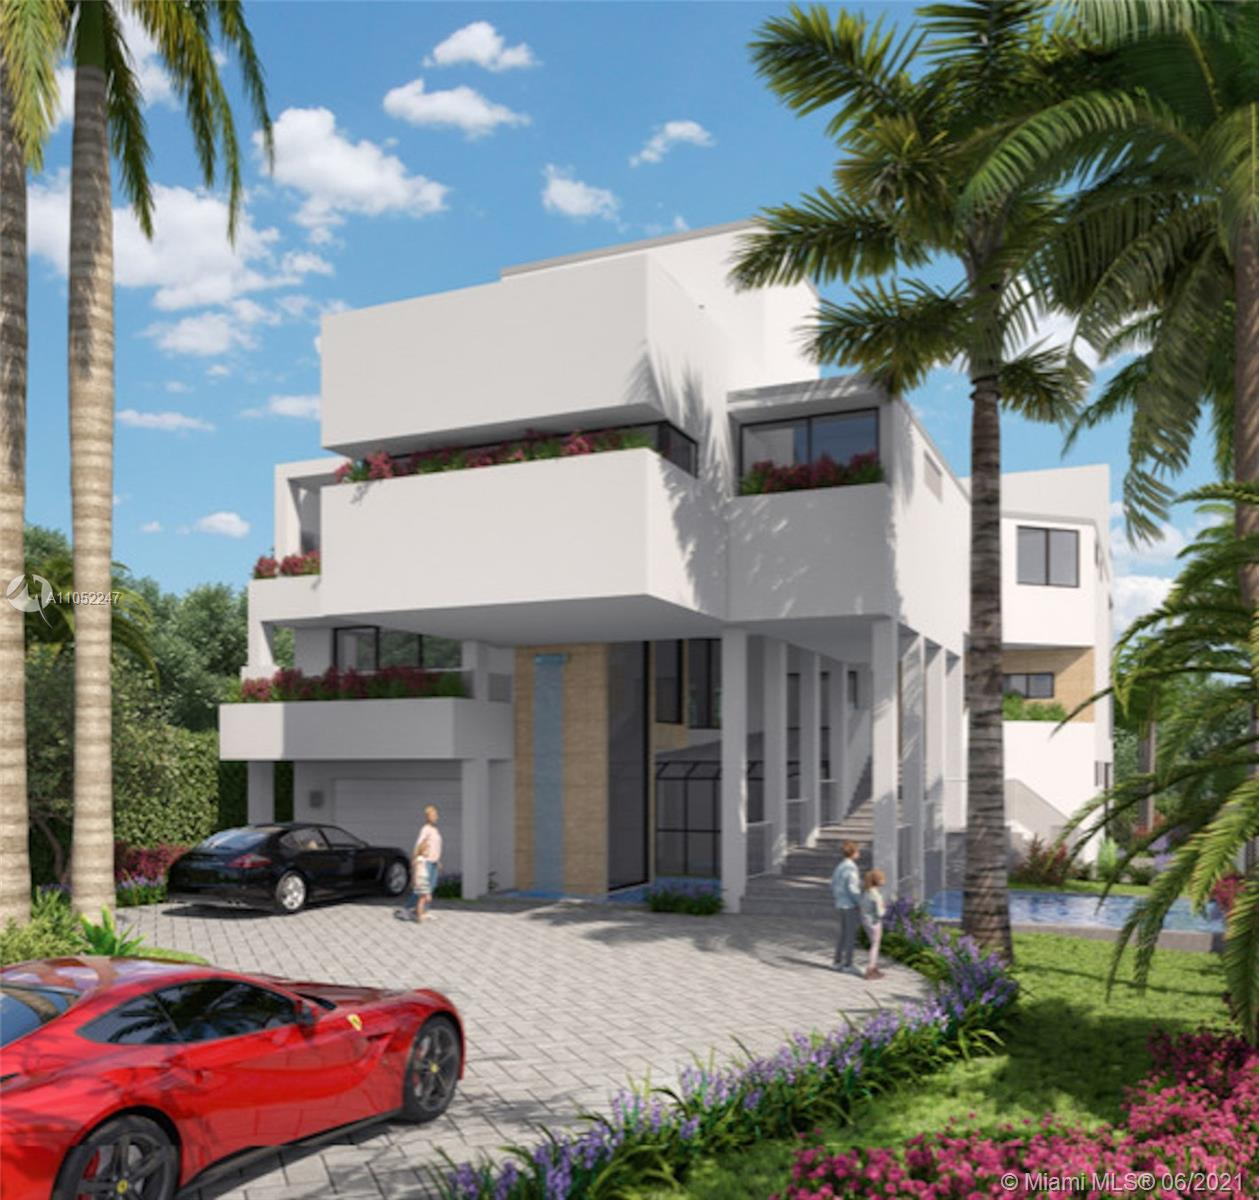 Pre-construction - a work in progress. Unique and most special opportunity to luxuriate in a newly designed home on prestigious Hibiscus Island on Miami Beach. Every conceivable comfort and appointment has been considered here. Elevator, gourmet chef's kitchen, salt water pool and spa, boat dock , office, laundry room, maid's quarters , large family room and media space, summer kitchen, exquisite landscaping, soaring ceilings, oversized windows , fountains, waterfalls; most gorgeous architecturally designed exterior created with the utmost thought. An eden extraordinaire for a discriminating buyer. Every evening enjoy the wide bay view as the reflection of the sunset and lavish neighboring properties meets your gaze. Plans available for inspection by appointment. Luxury, comfort, quality.